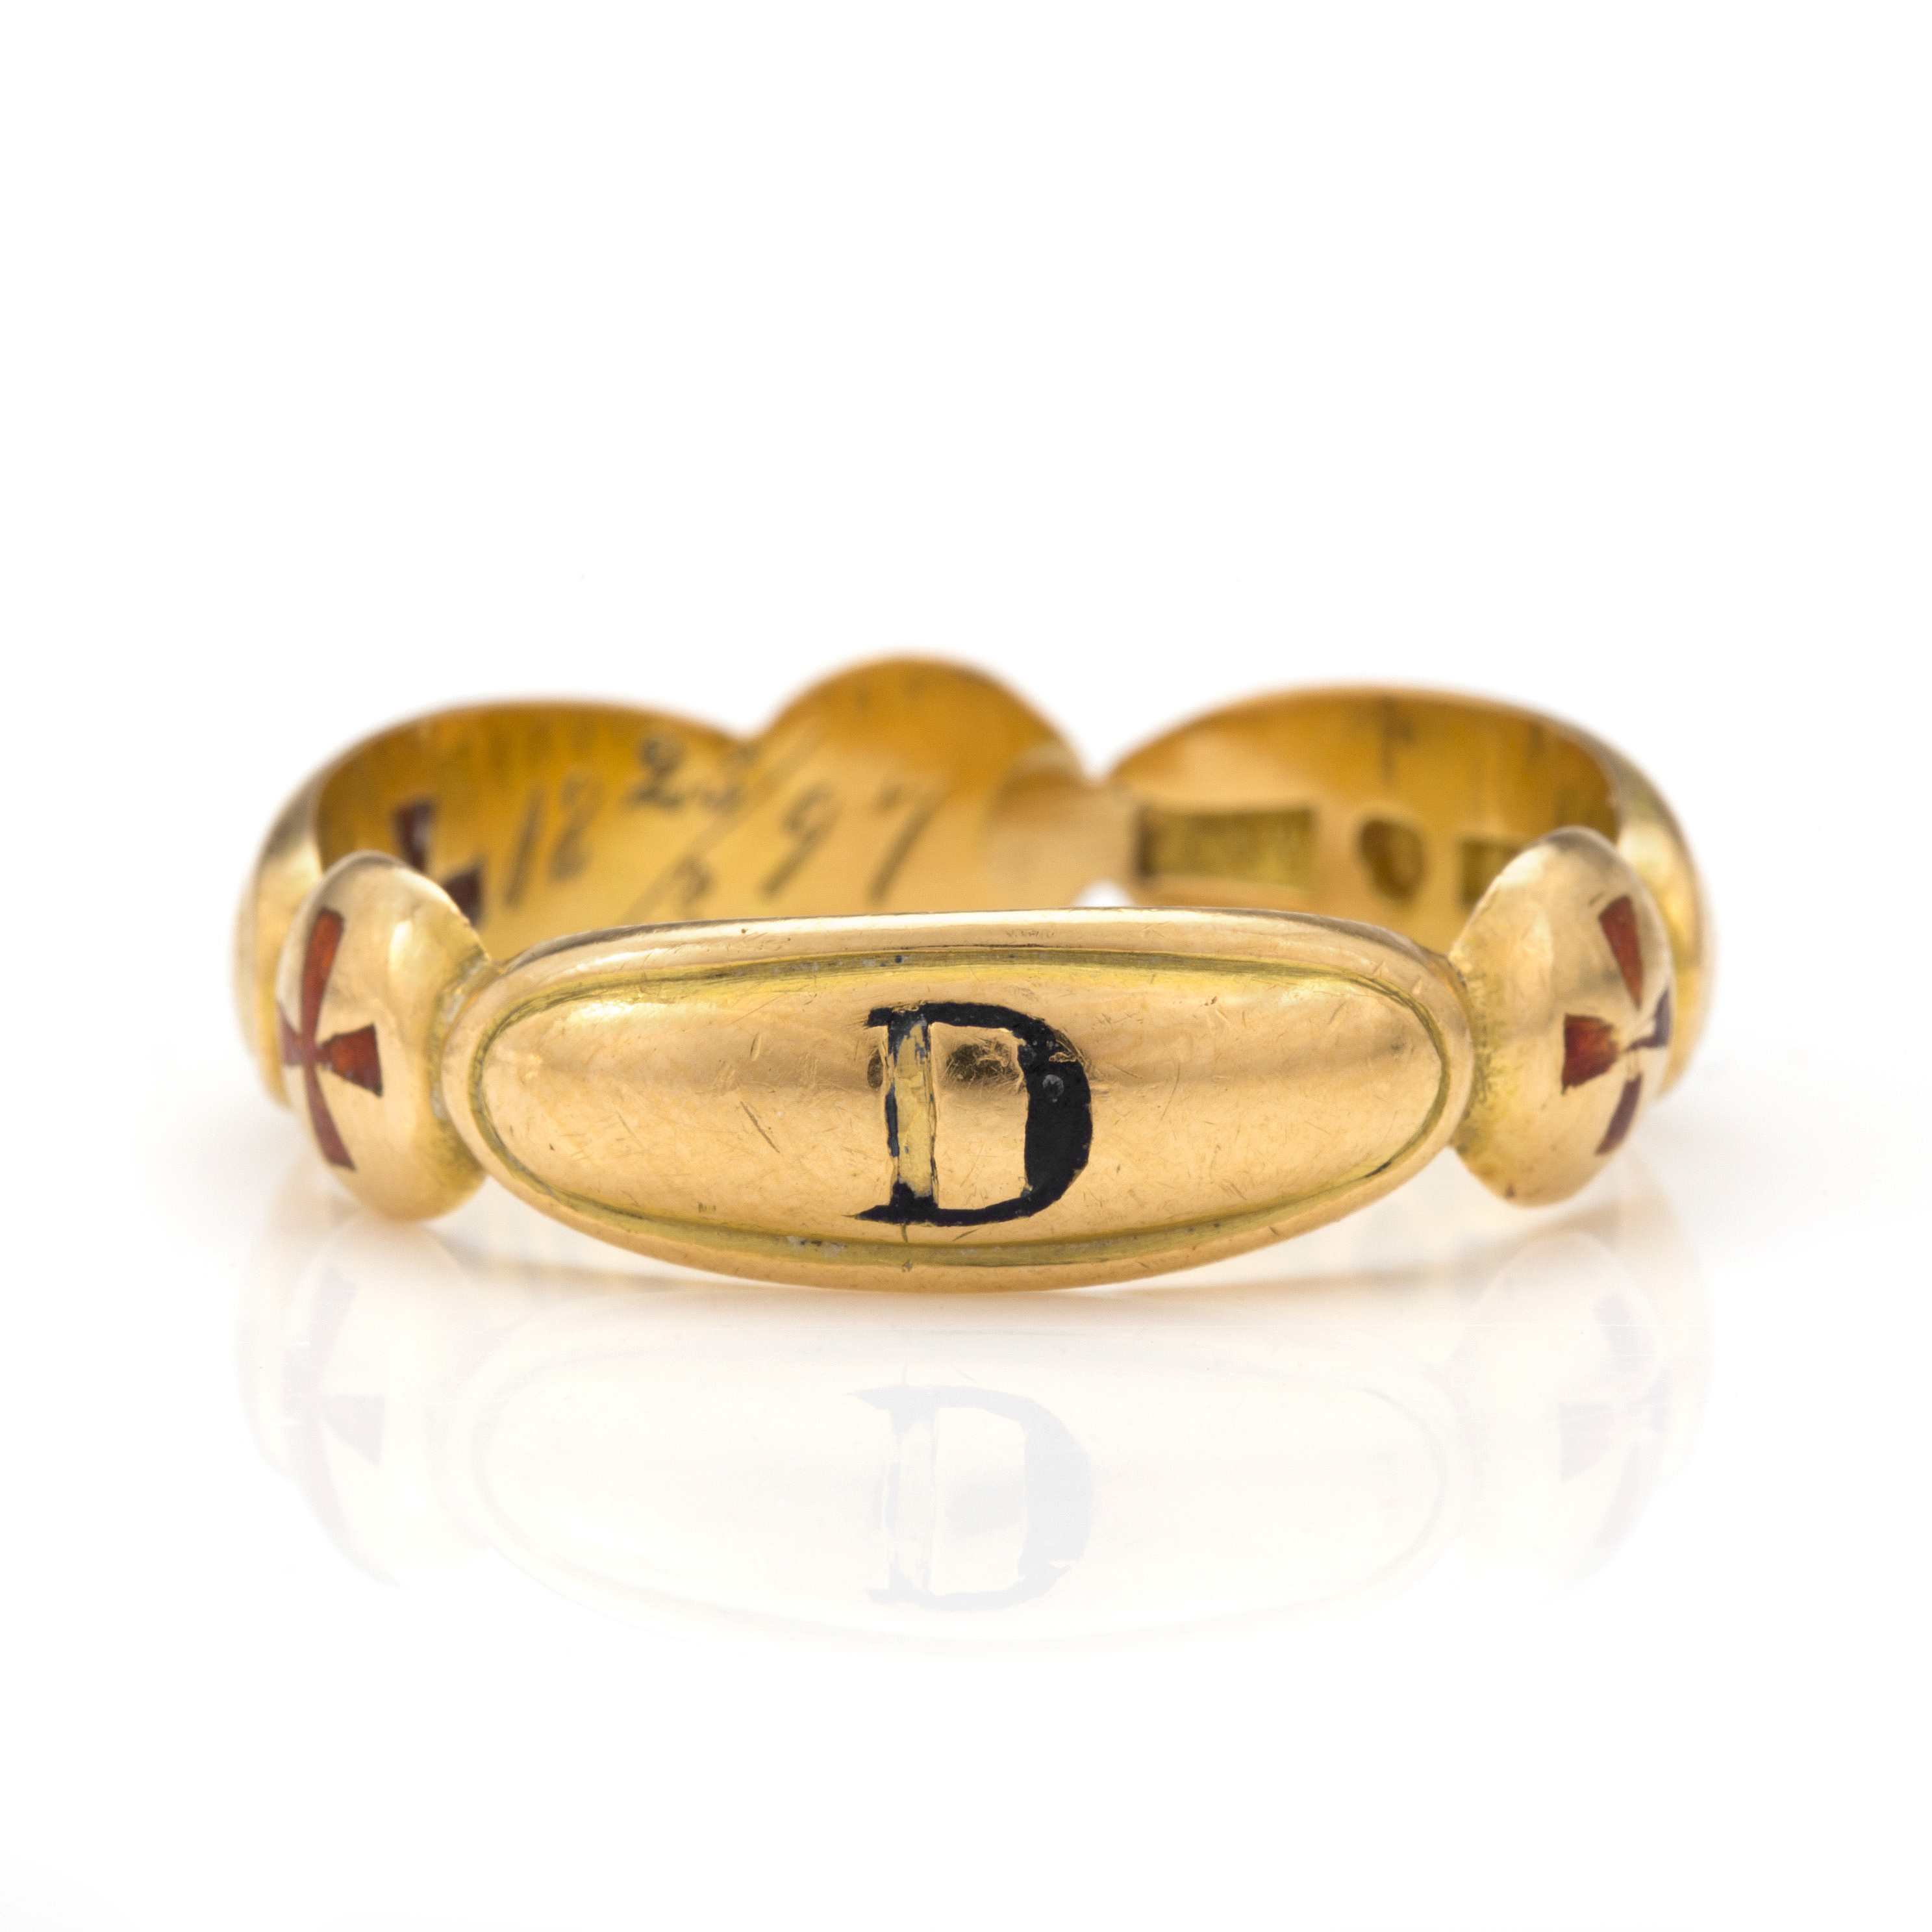 An 18K gold Masonic ring  - Bukowskis